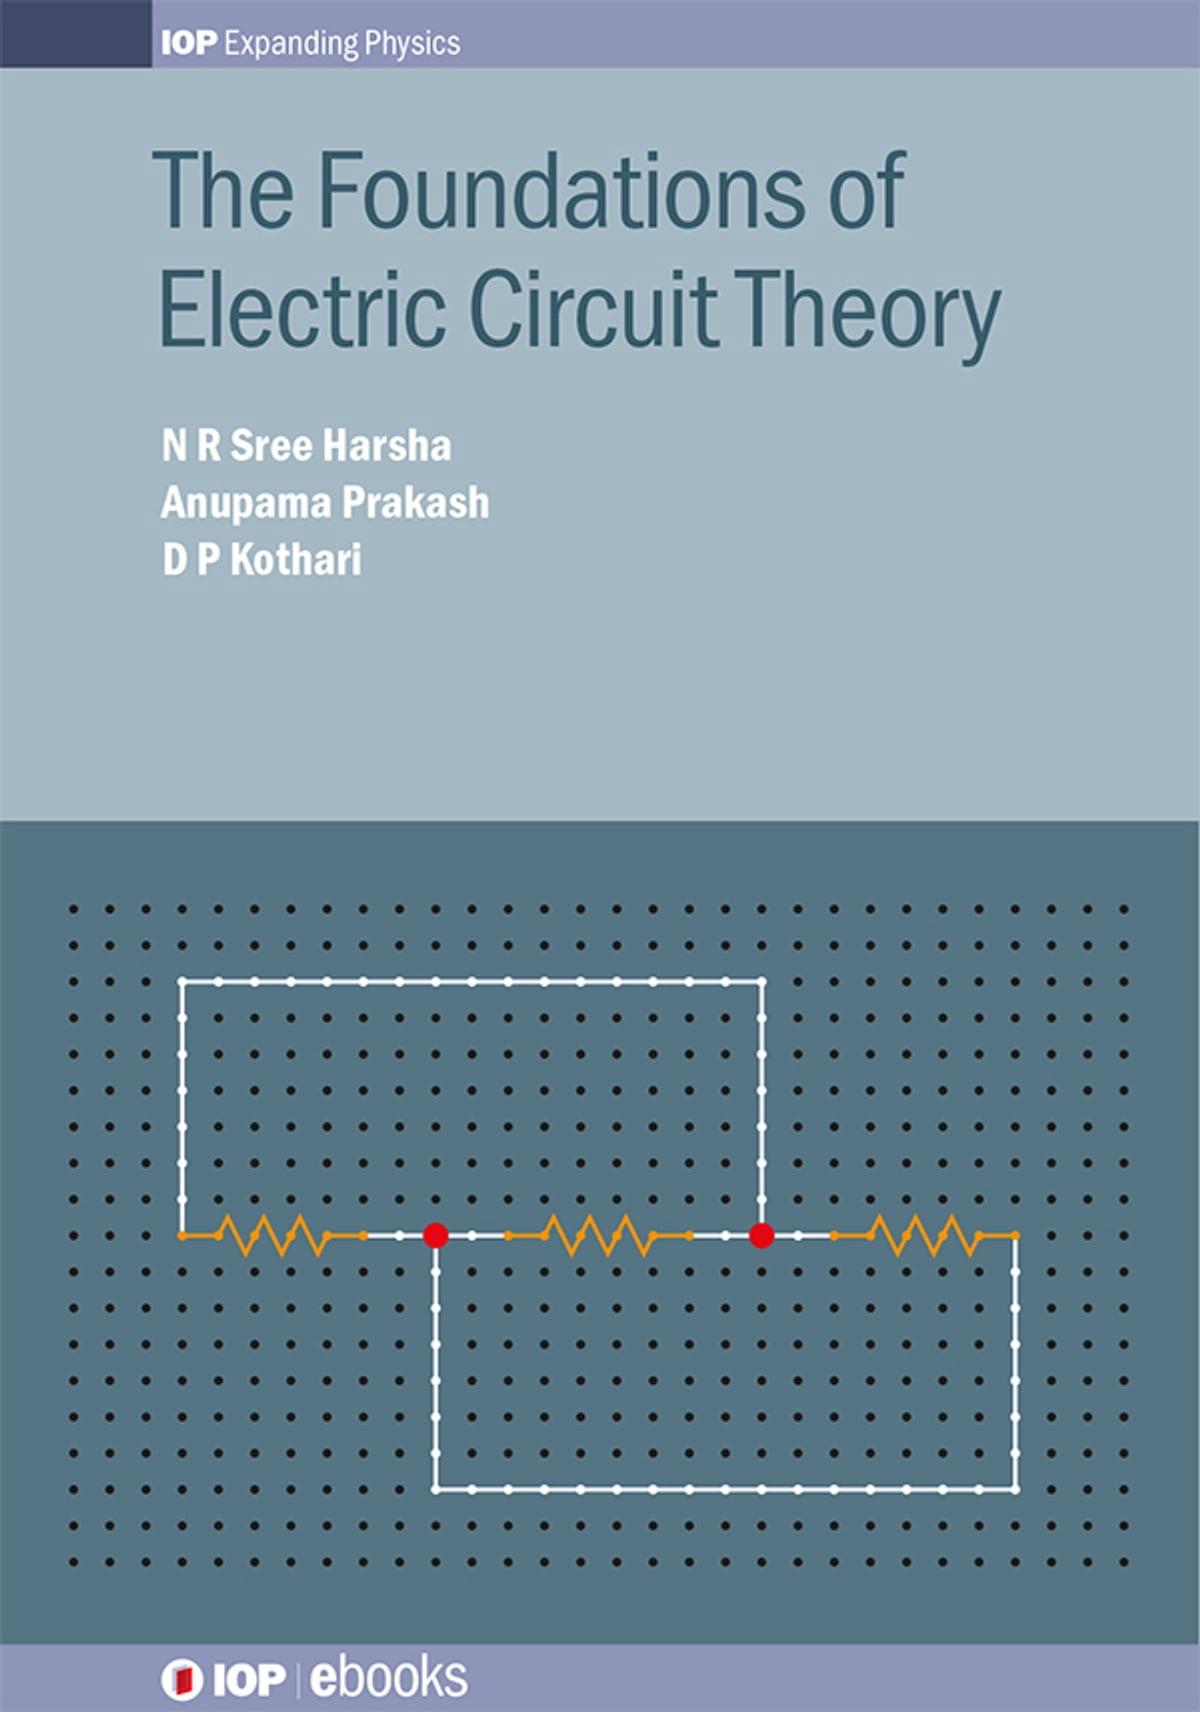 The Foundations of Electric Circuit Theory eBook by N R Sree Harsha ...